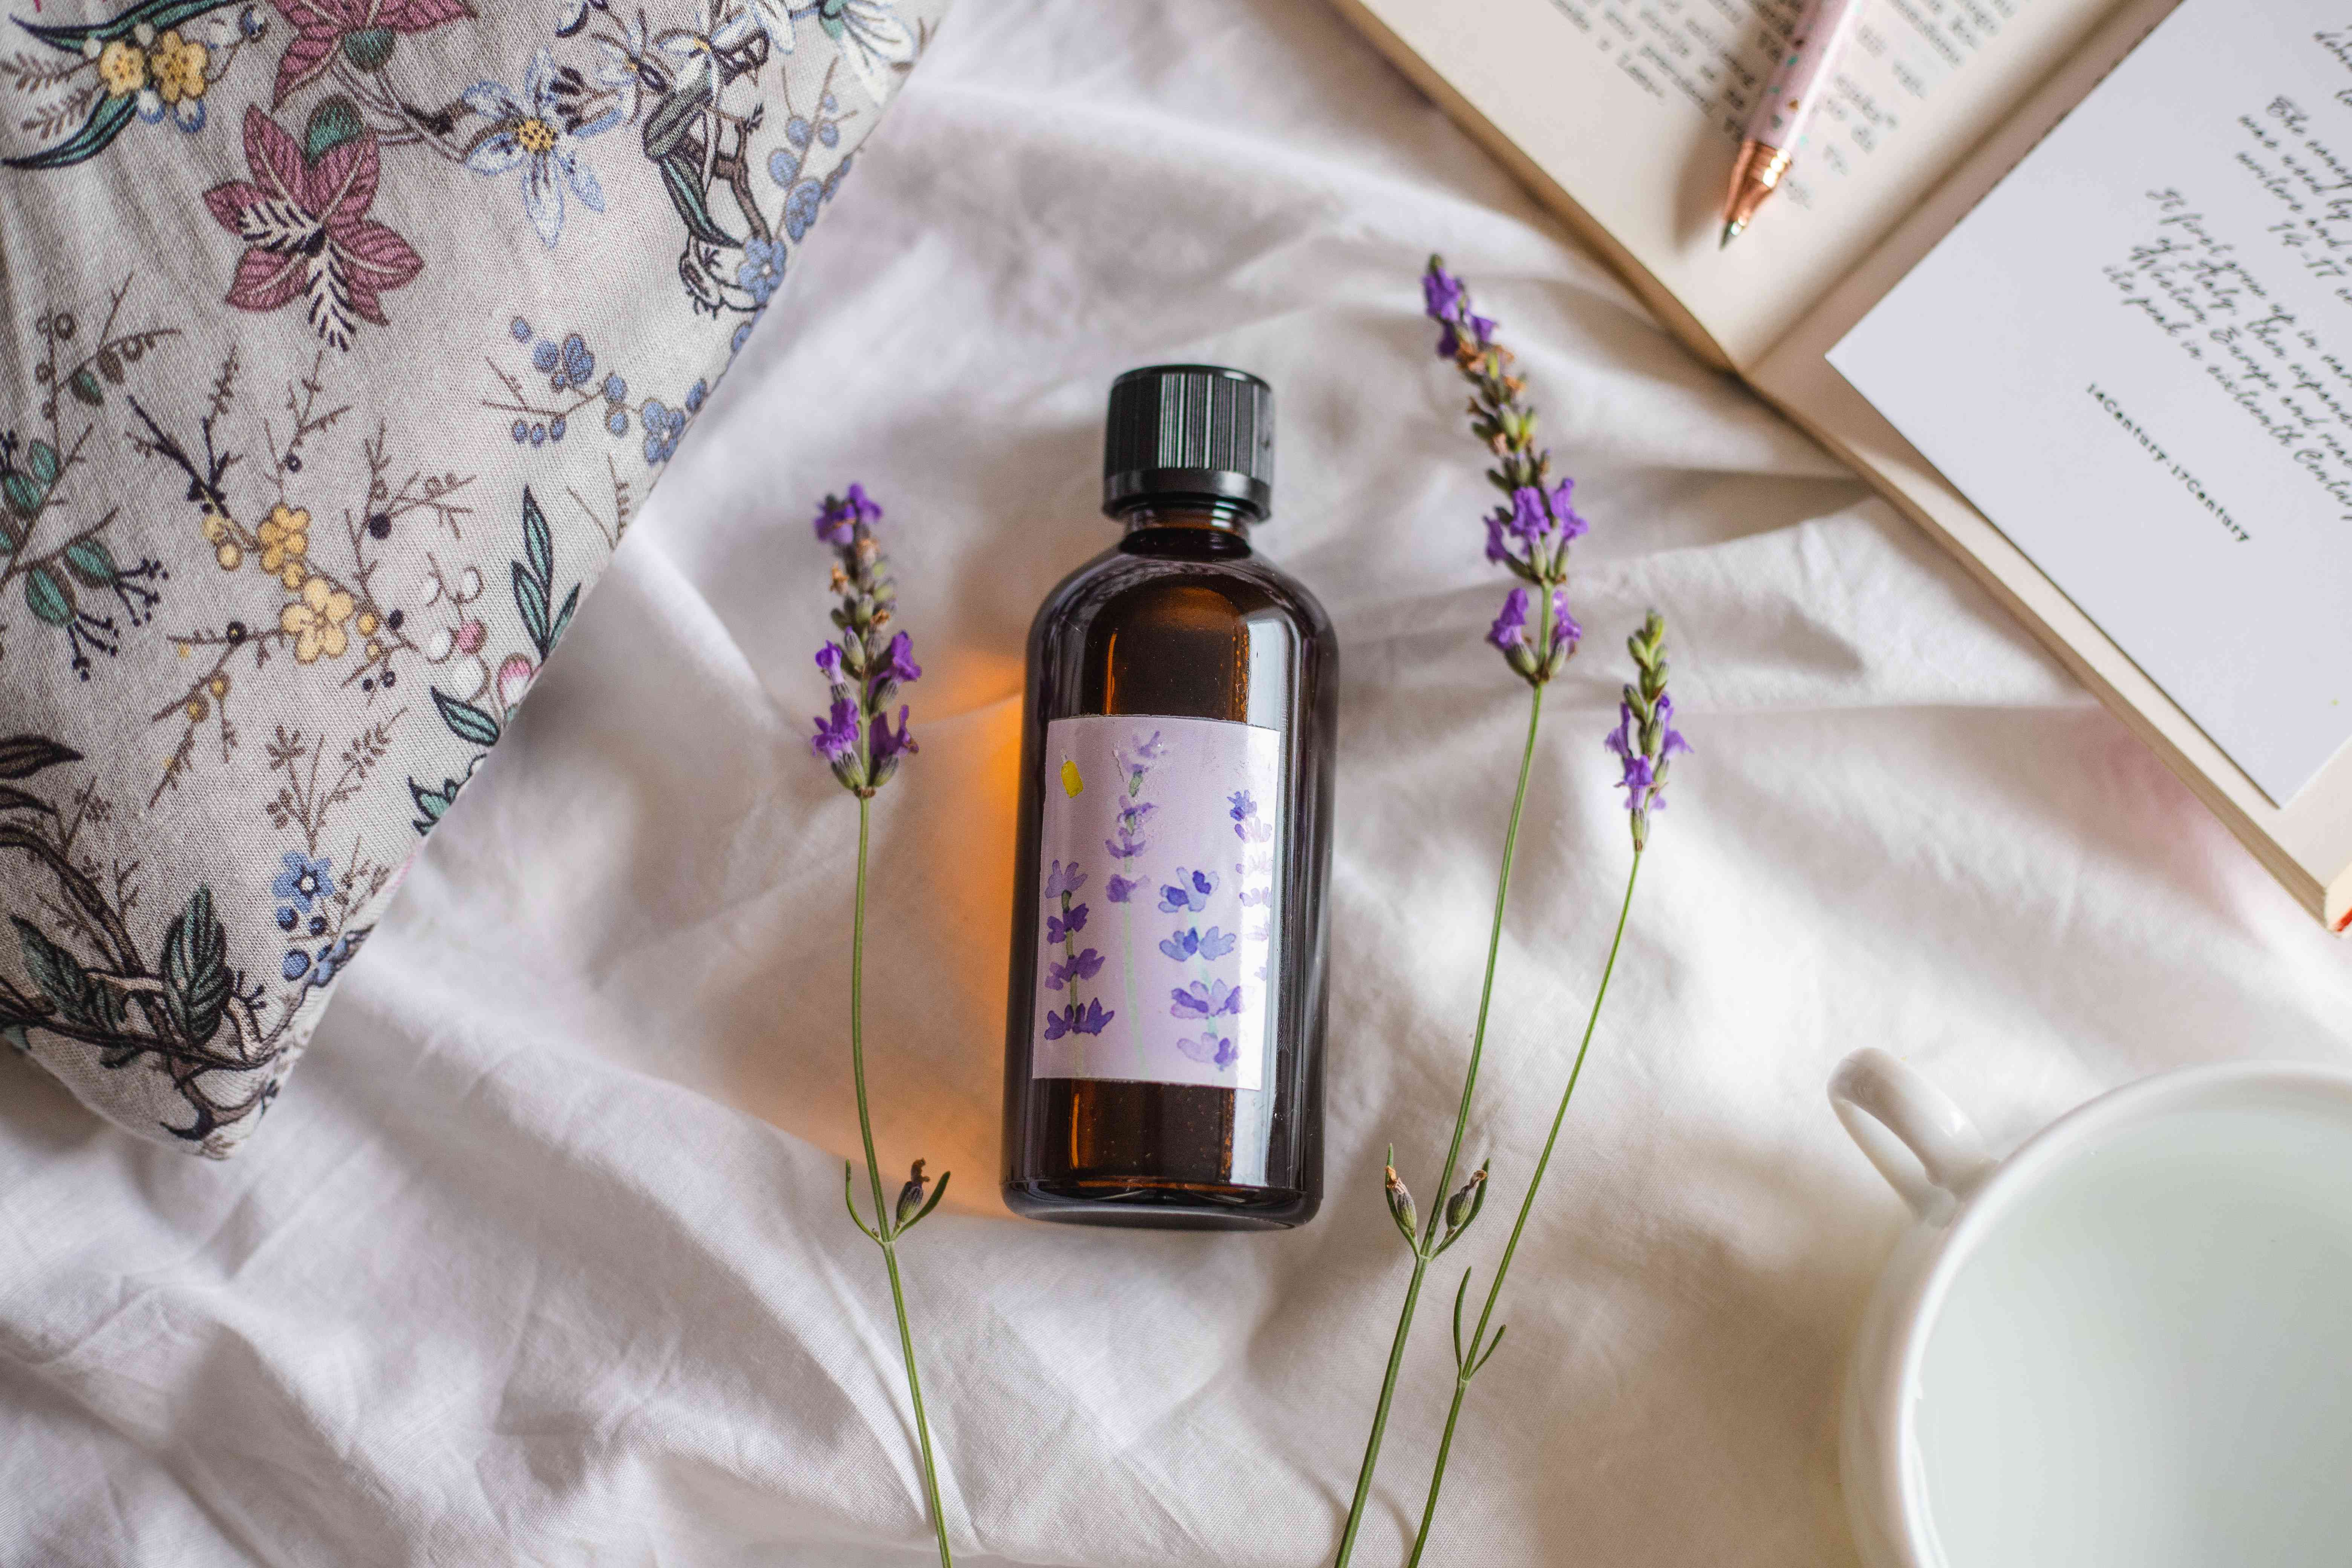 homemade amber bottle of lavender bottle oil arranged on fabric next to dried lavender and journal